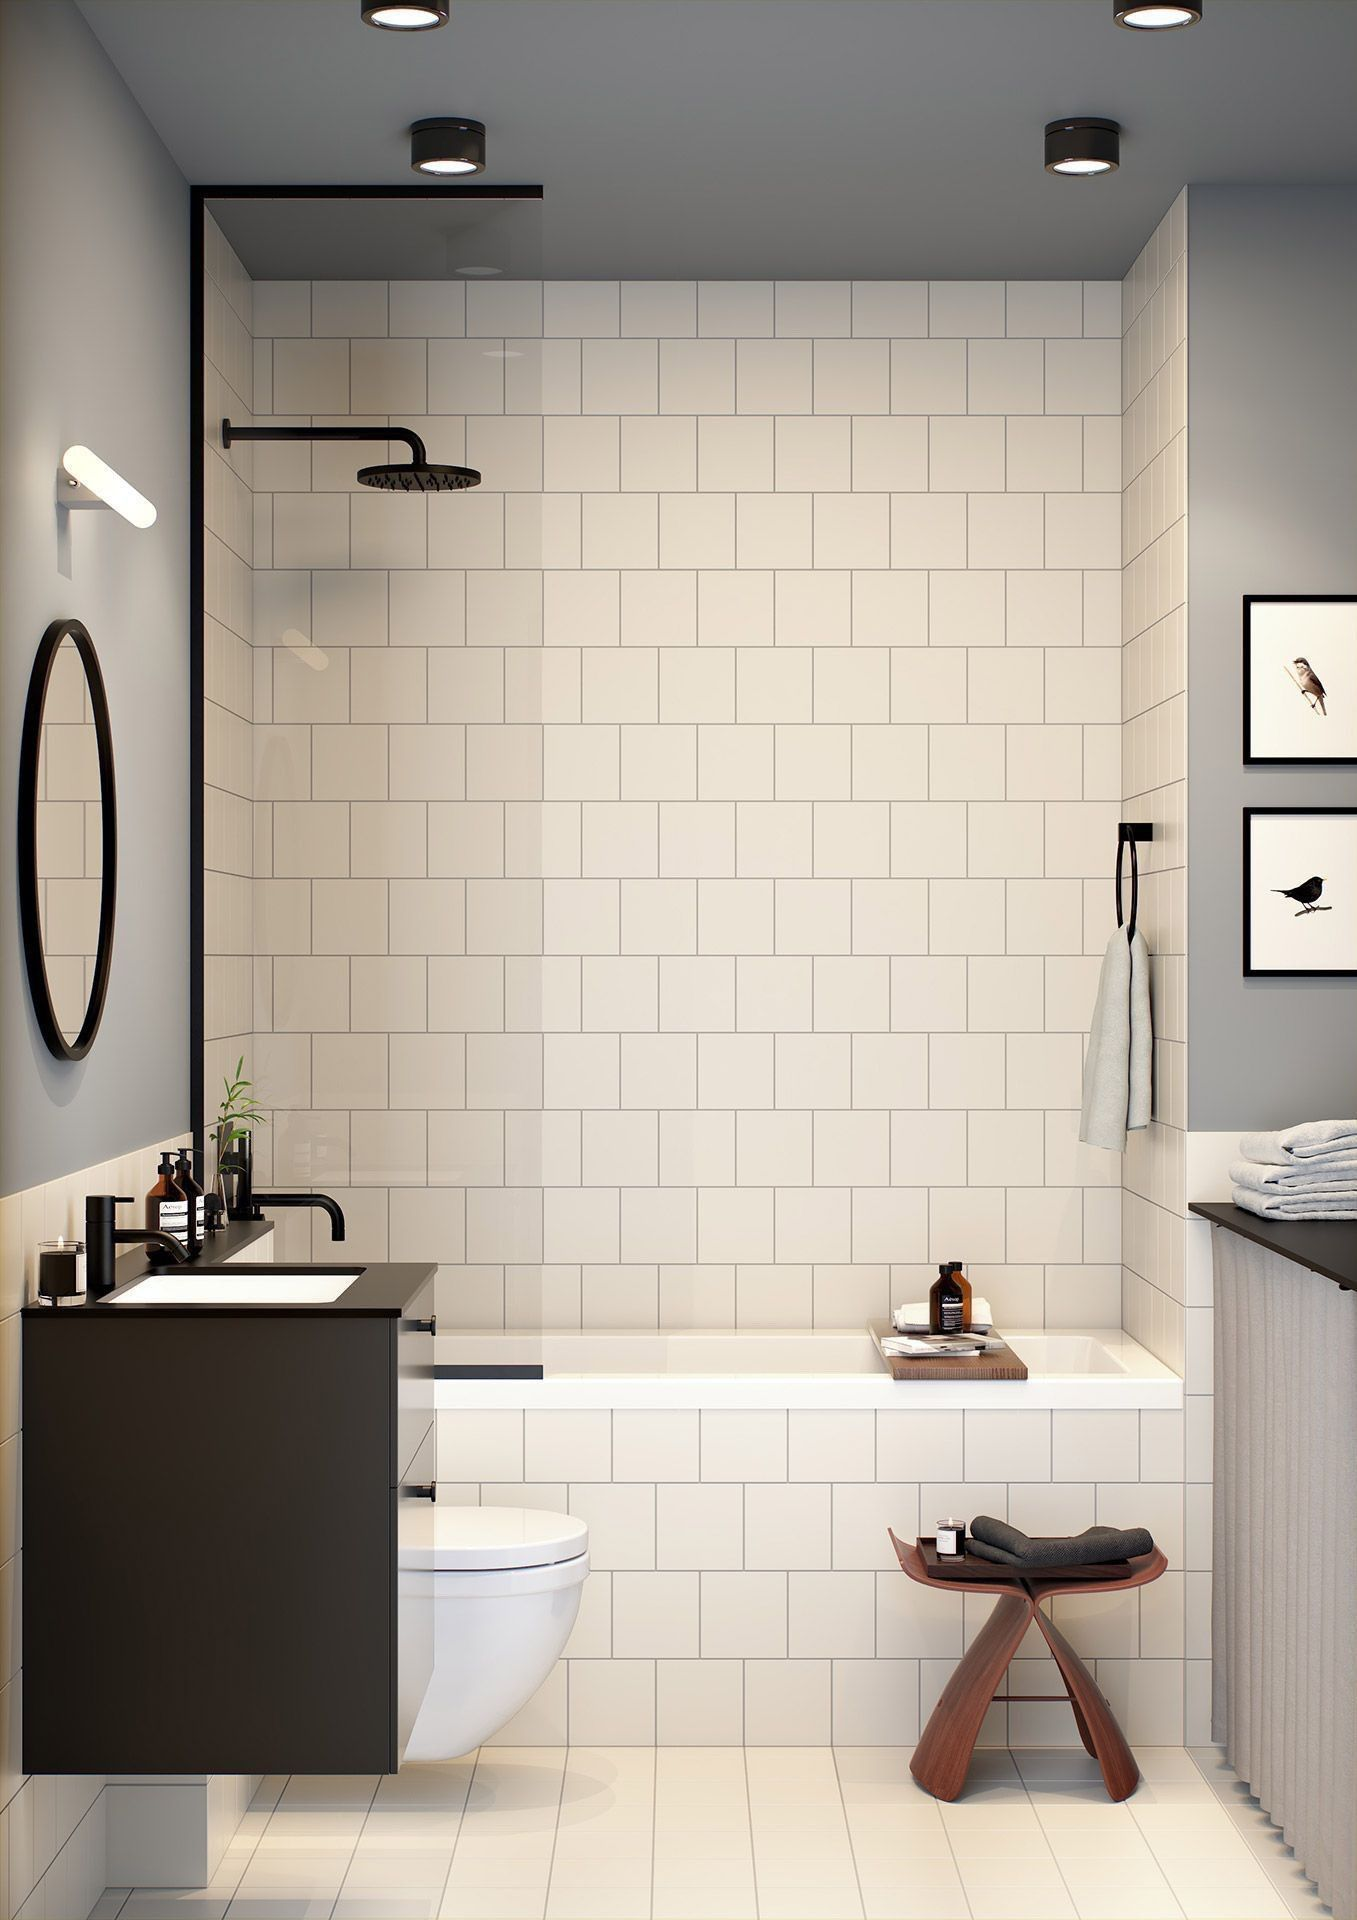 Bathroom Ideas Bathroom Renovations On A Budget | Bathroom ...